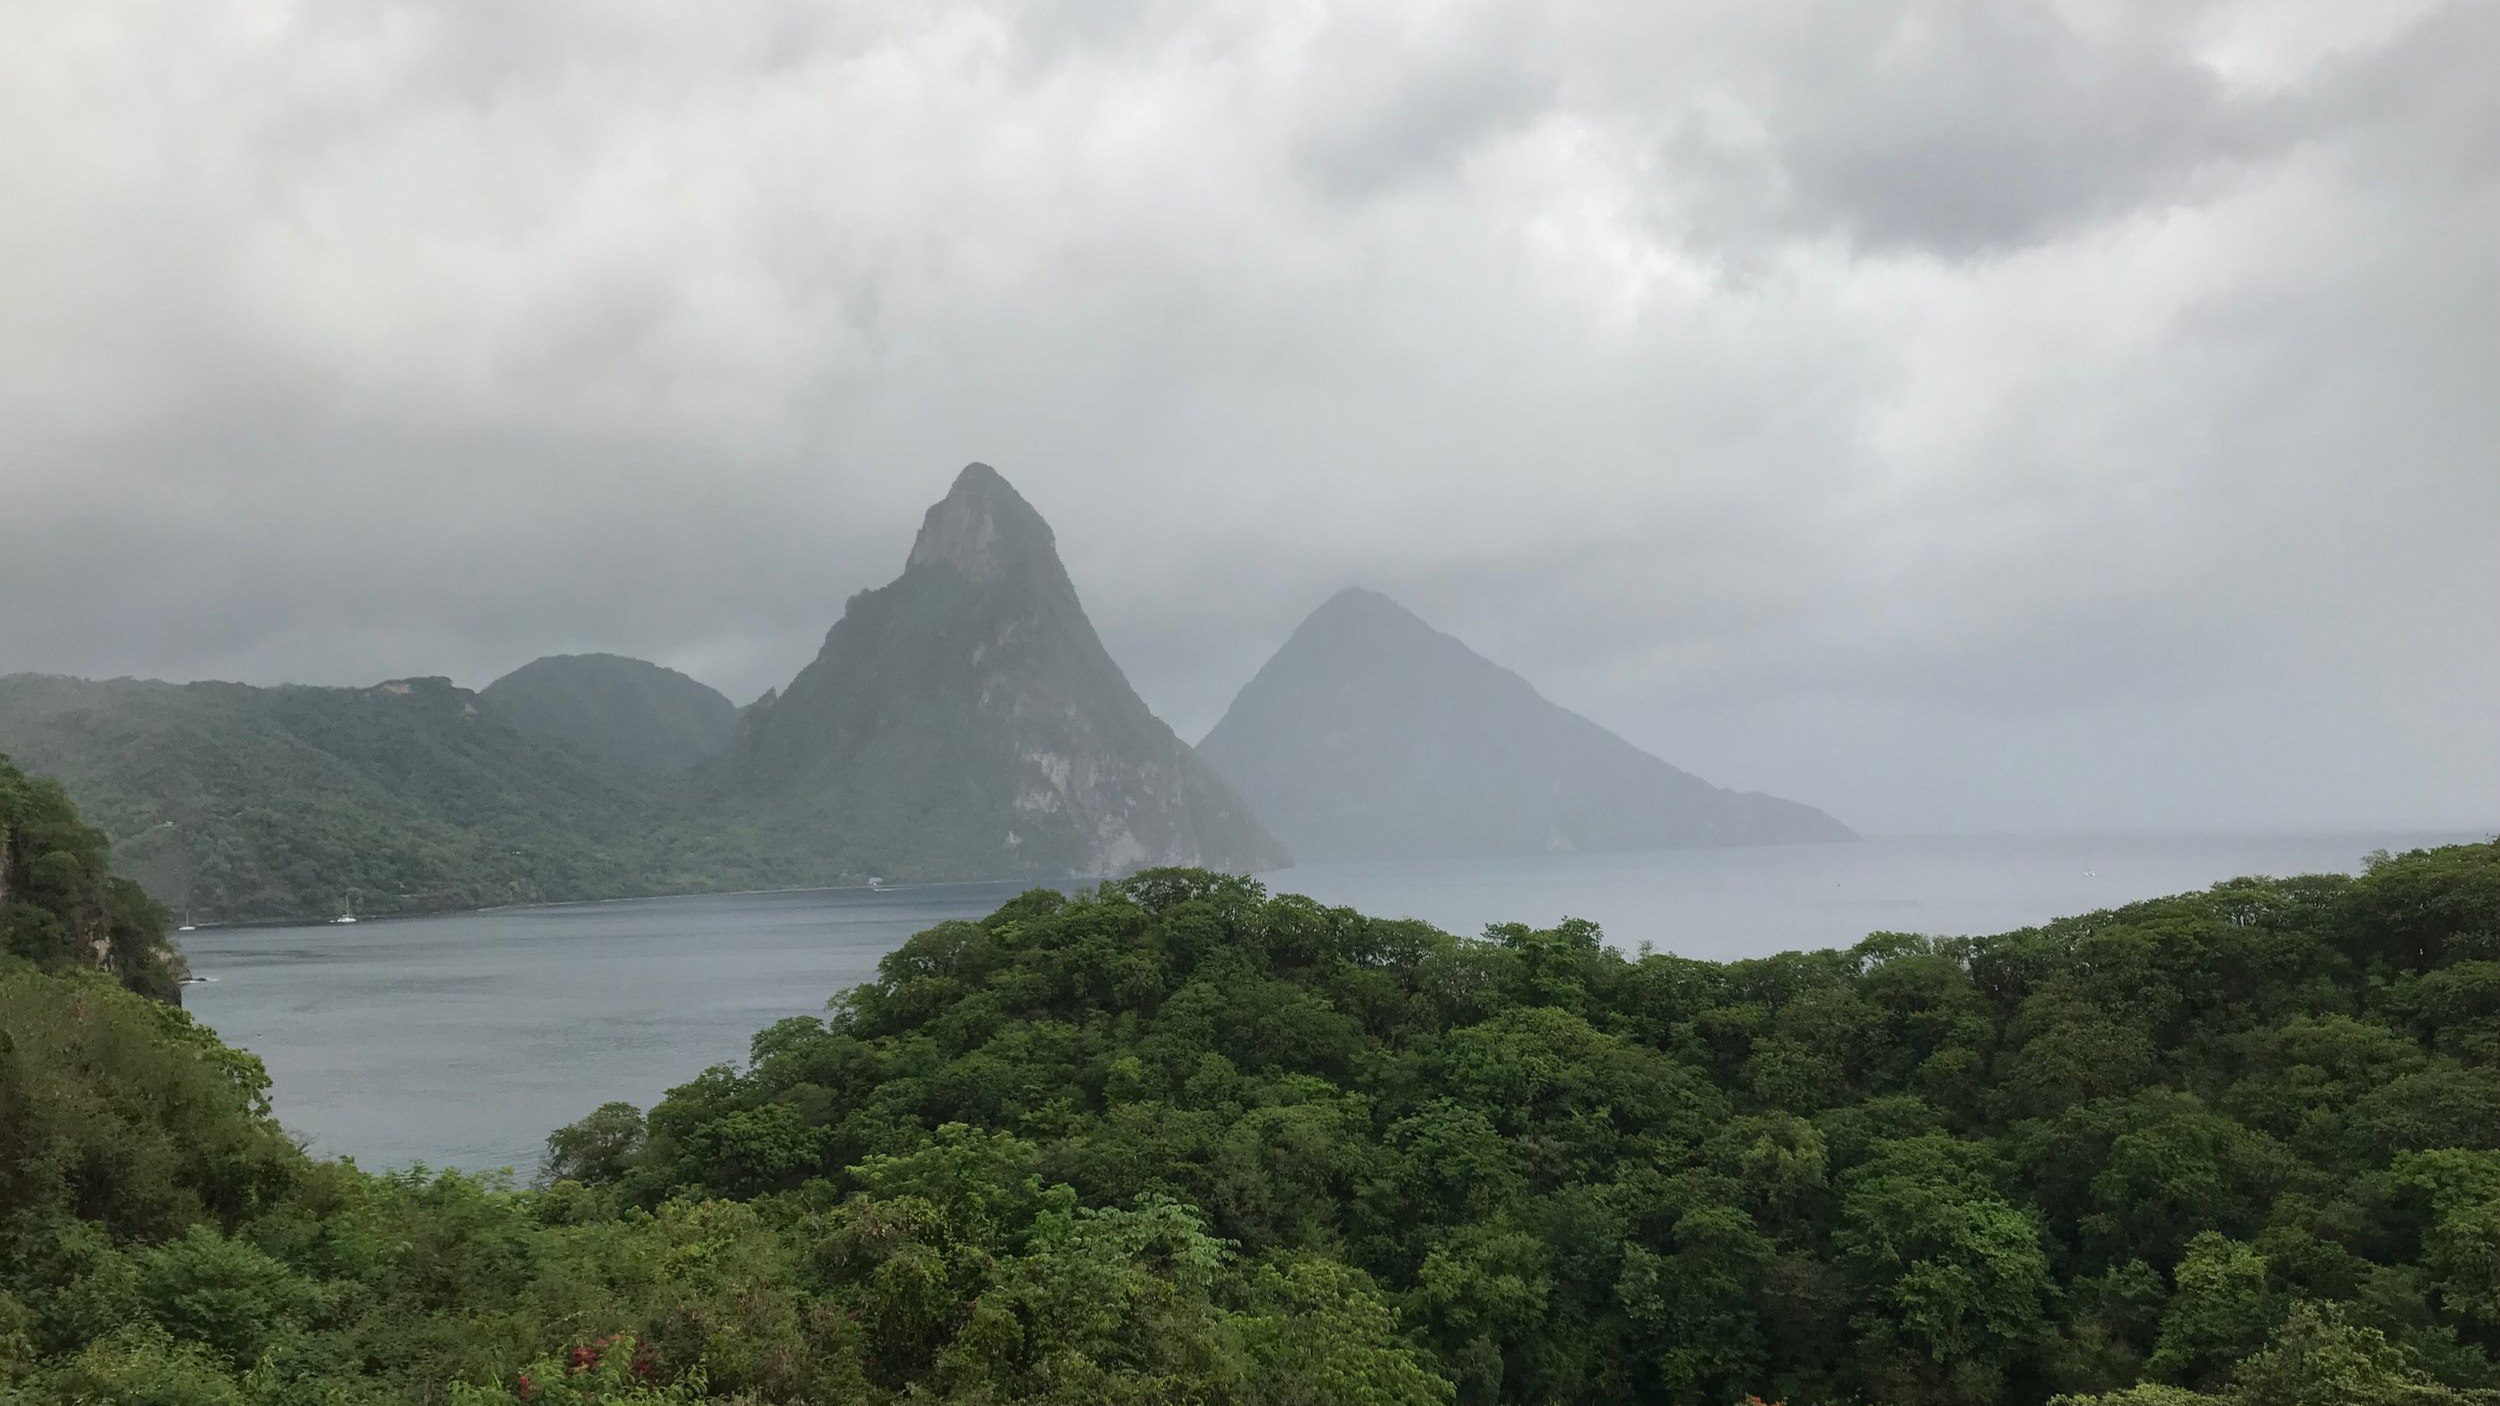 The view from our room at Jade Mountain on St. Lucia in the Caribbean. August 1, 2018.